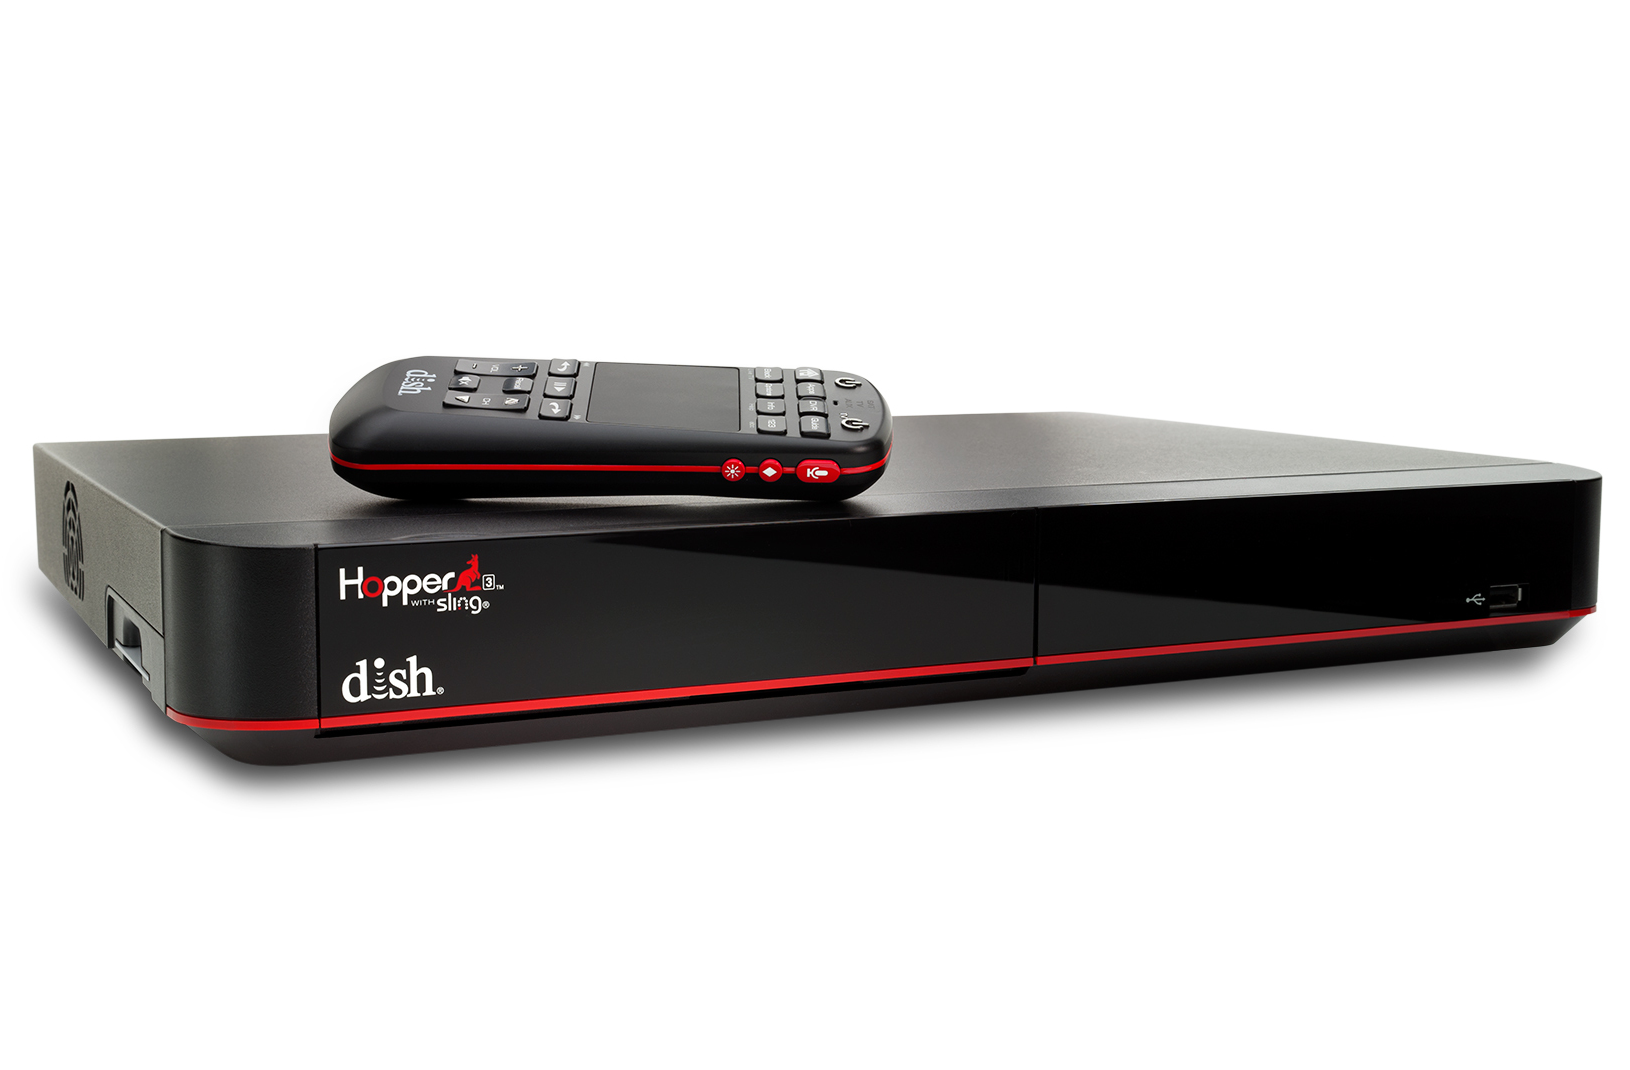 hooking up external hard drive to dish network dvr A dish network dvr receiver has an internal hard drive for storing recorded charge to dish network to activate the usb connection on the dish network dvr.